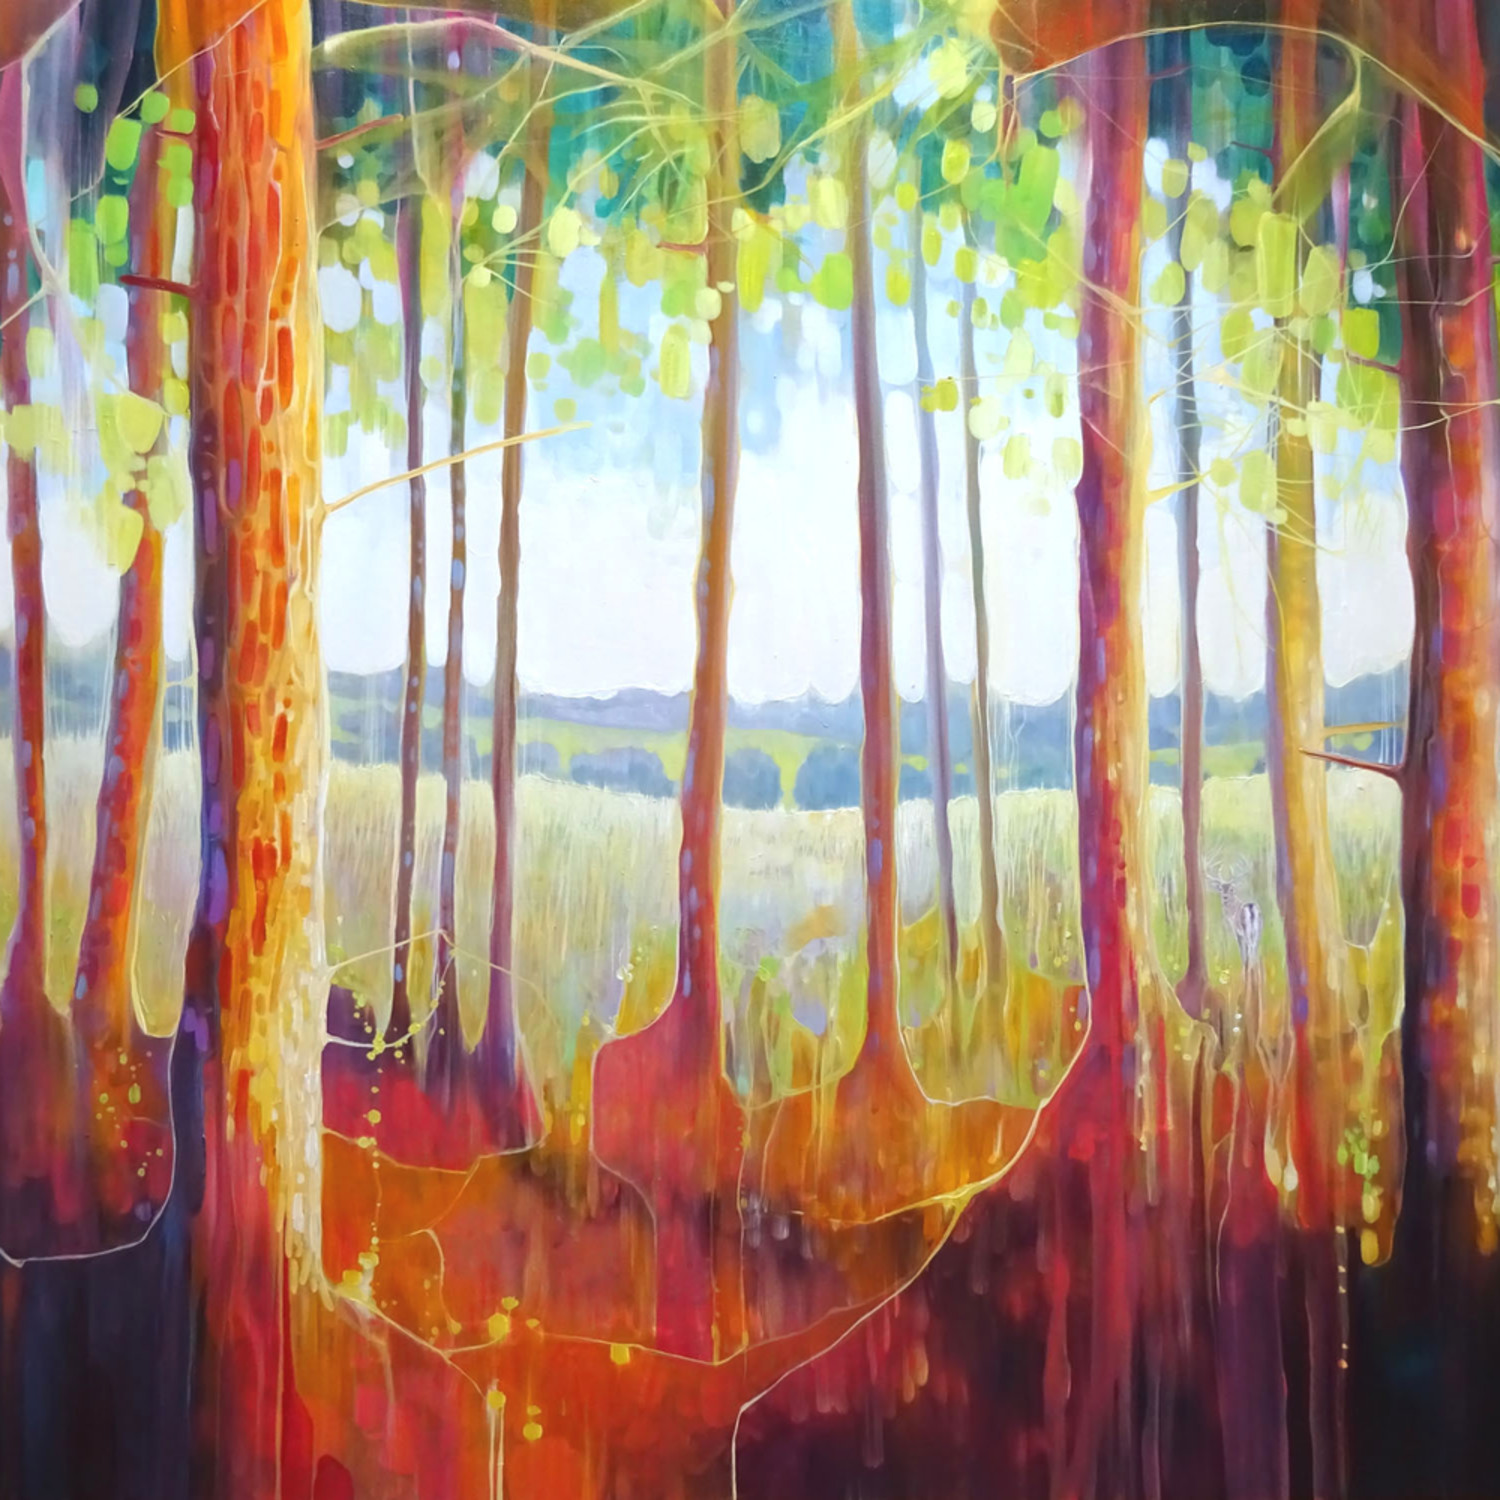 Out of the forest by gill bustamante 72 yica3s